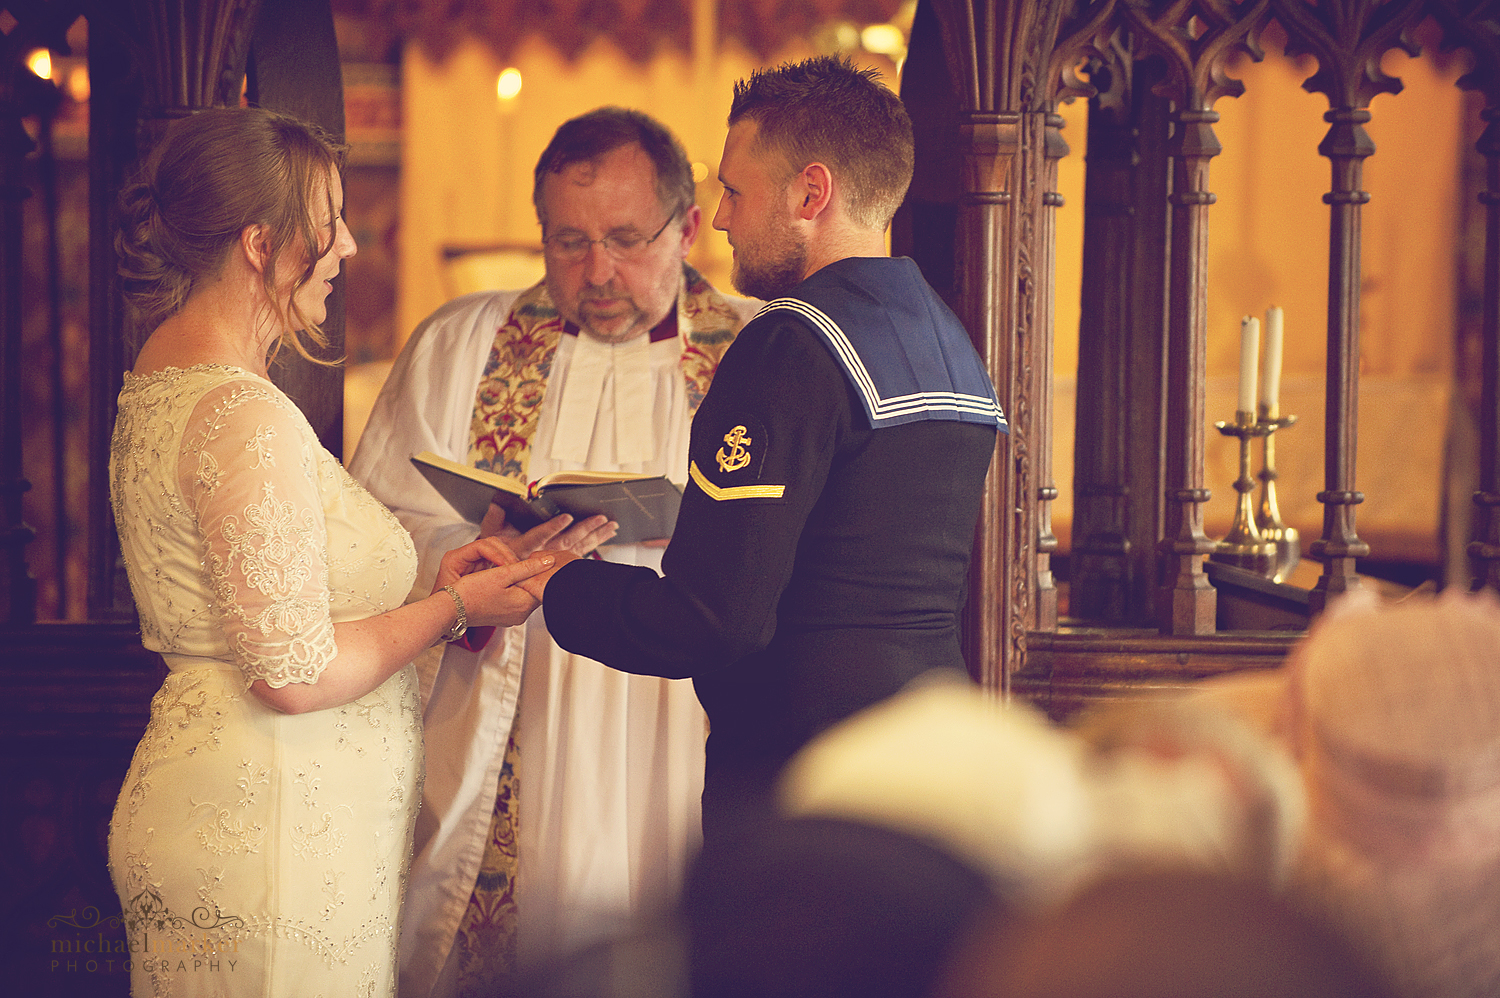 Exchanging-vows-at-Dartmoor-village-church-wedding